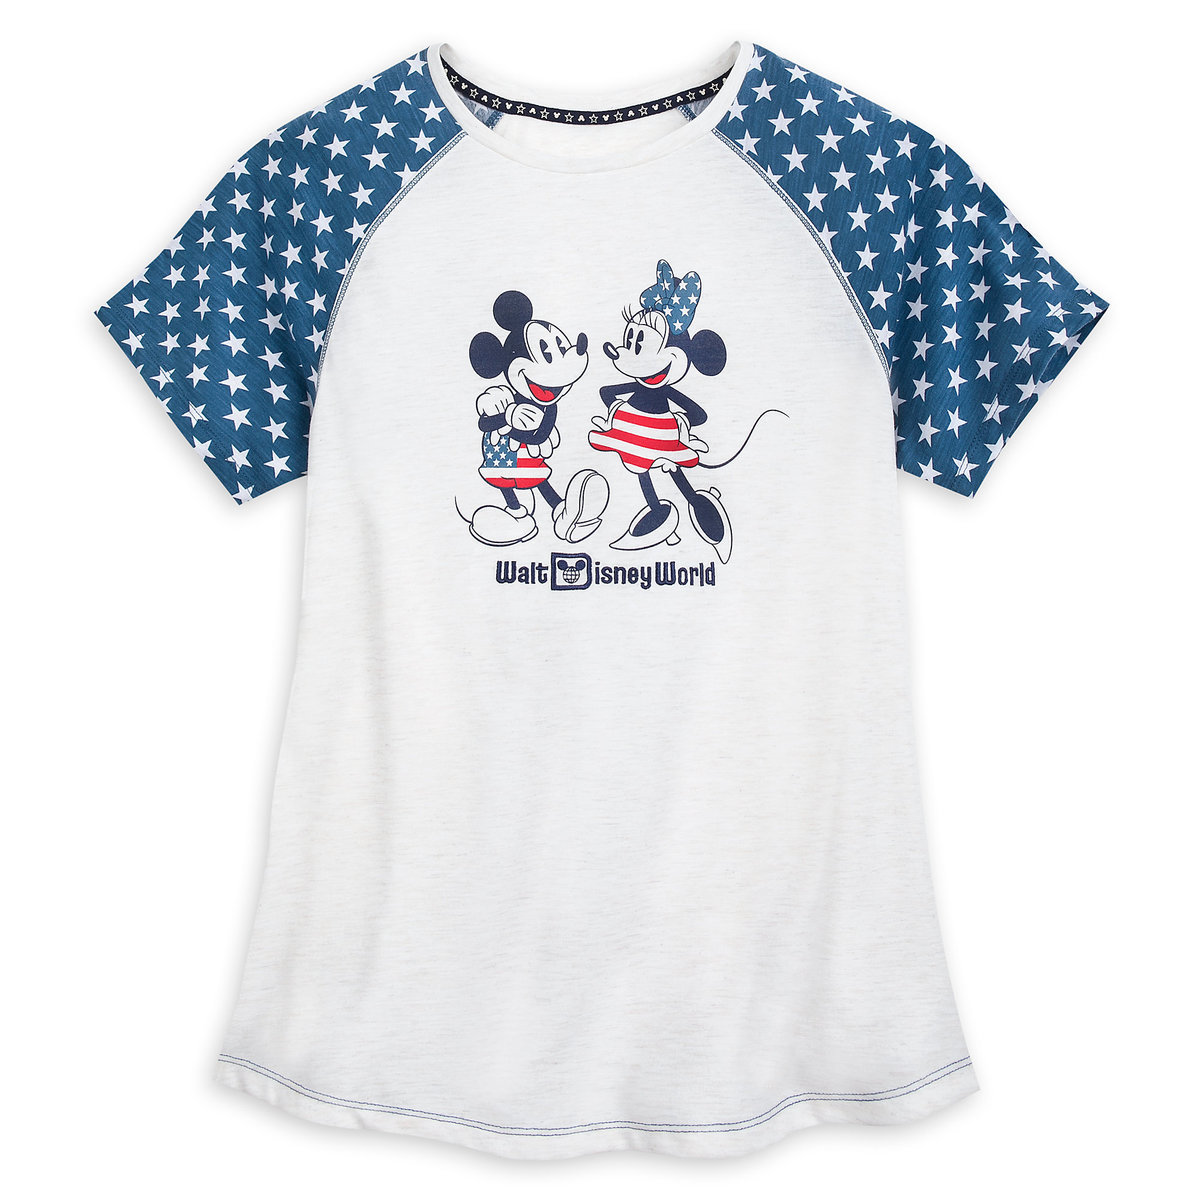 a3434b338103 Product Image of Mickey and Minnie Mouse Americana T-Shirt for Women - Walt  Disney